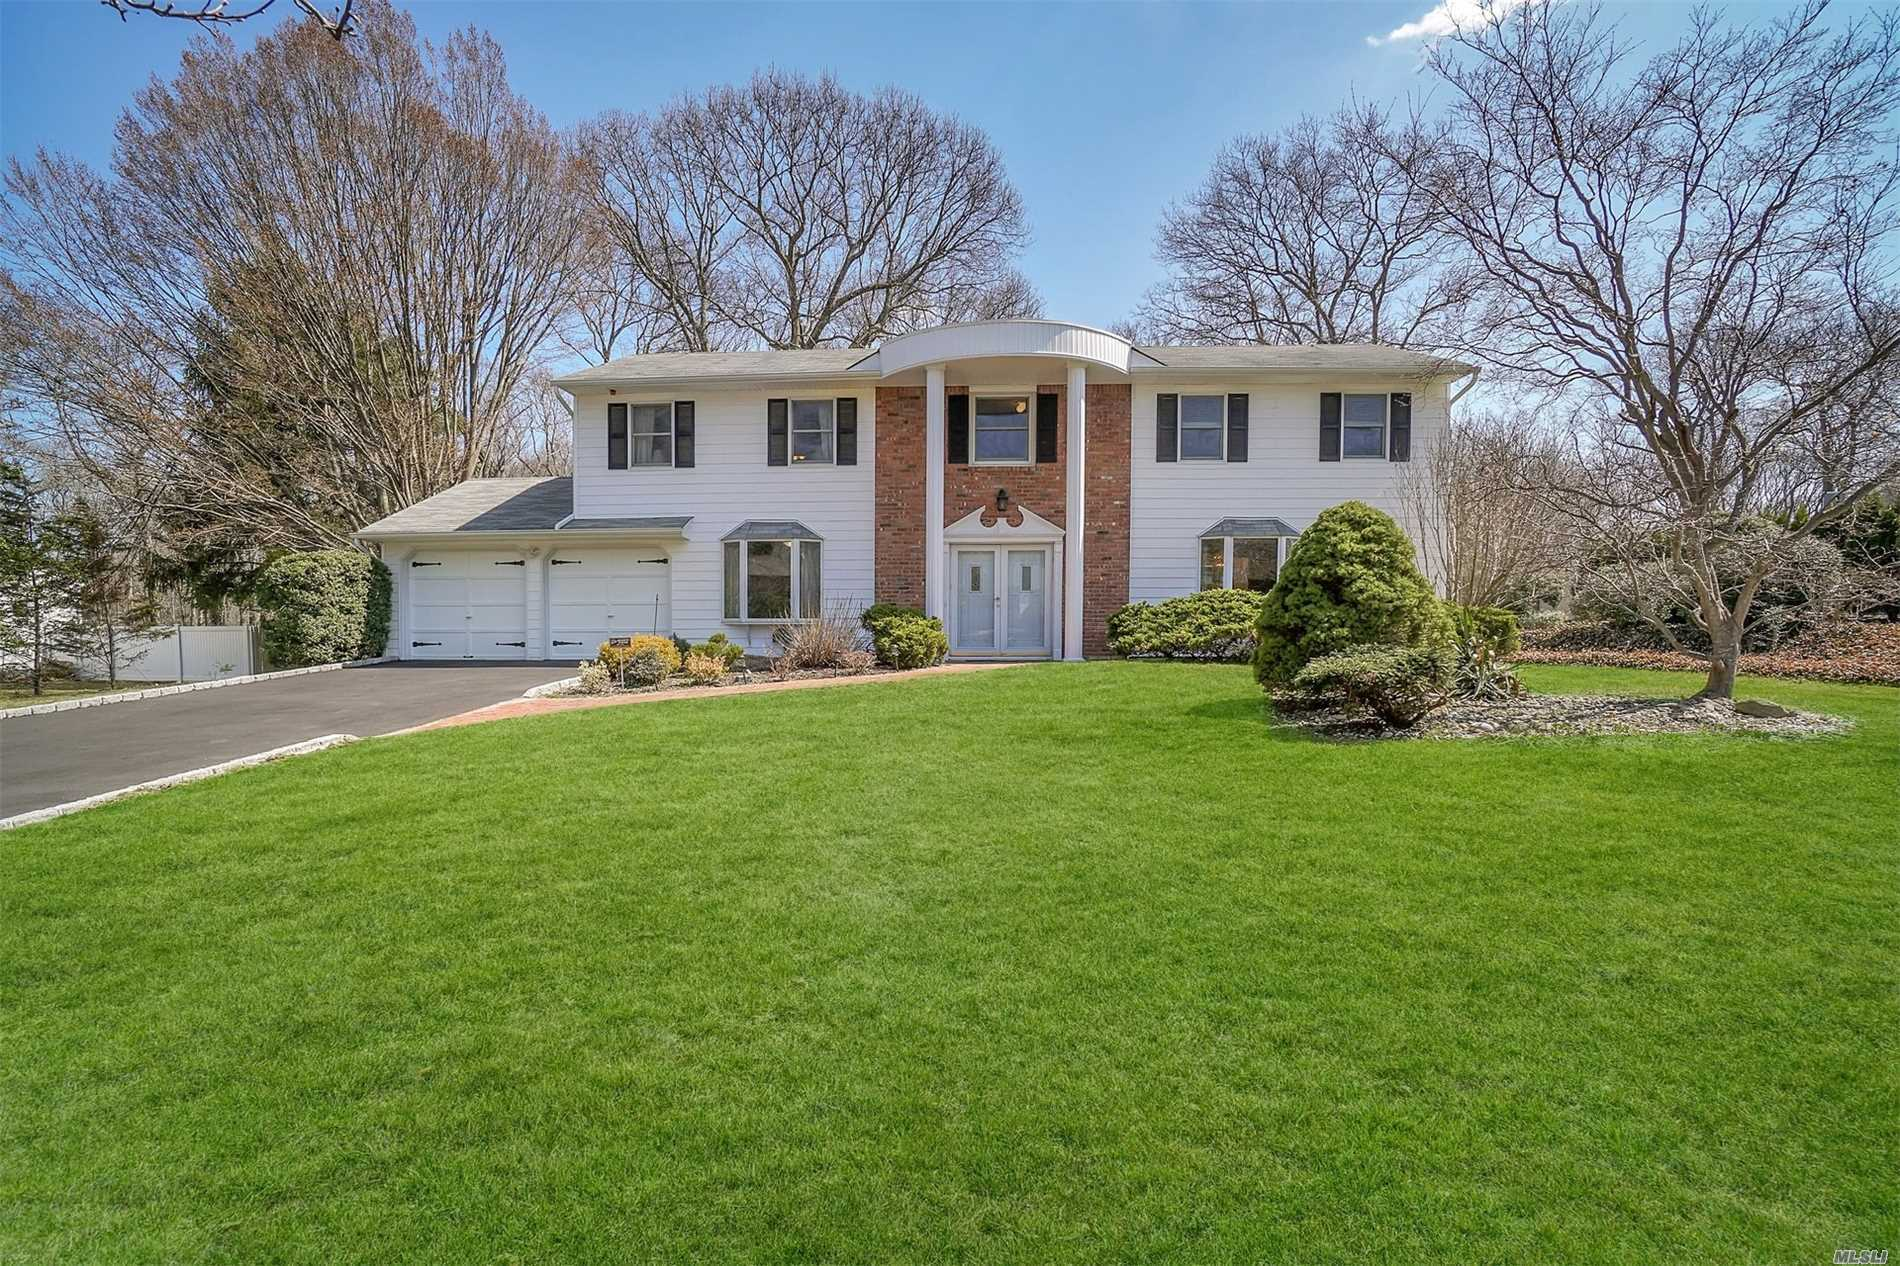 Dix Hills Vanderbilt Stately 4/5 Bedroom Colonial . Renowned Blue Ribbon Commack SD#10. Property lover's dream backyard!! Incredible Flat Park like property.. a rare find! Main level study and all generous sized rooms are some of the outstanding features of this home. New 2018/2019 updates include Preon CAC, Hot Water Heater, All new Top of the line appliances, Fisher-Pykel Gas Cook top, and More. Gleaming Wood Floors. and Stone Fireplace. A Rare home of distinction